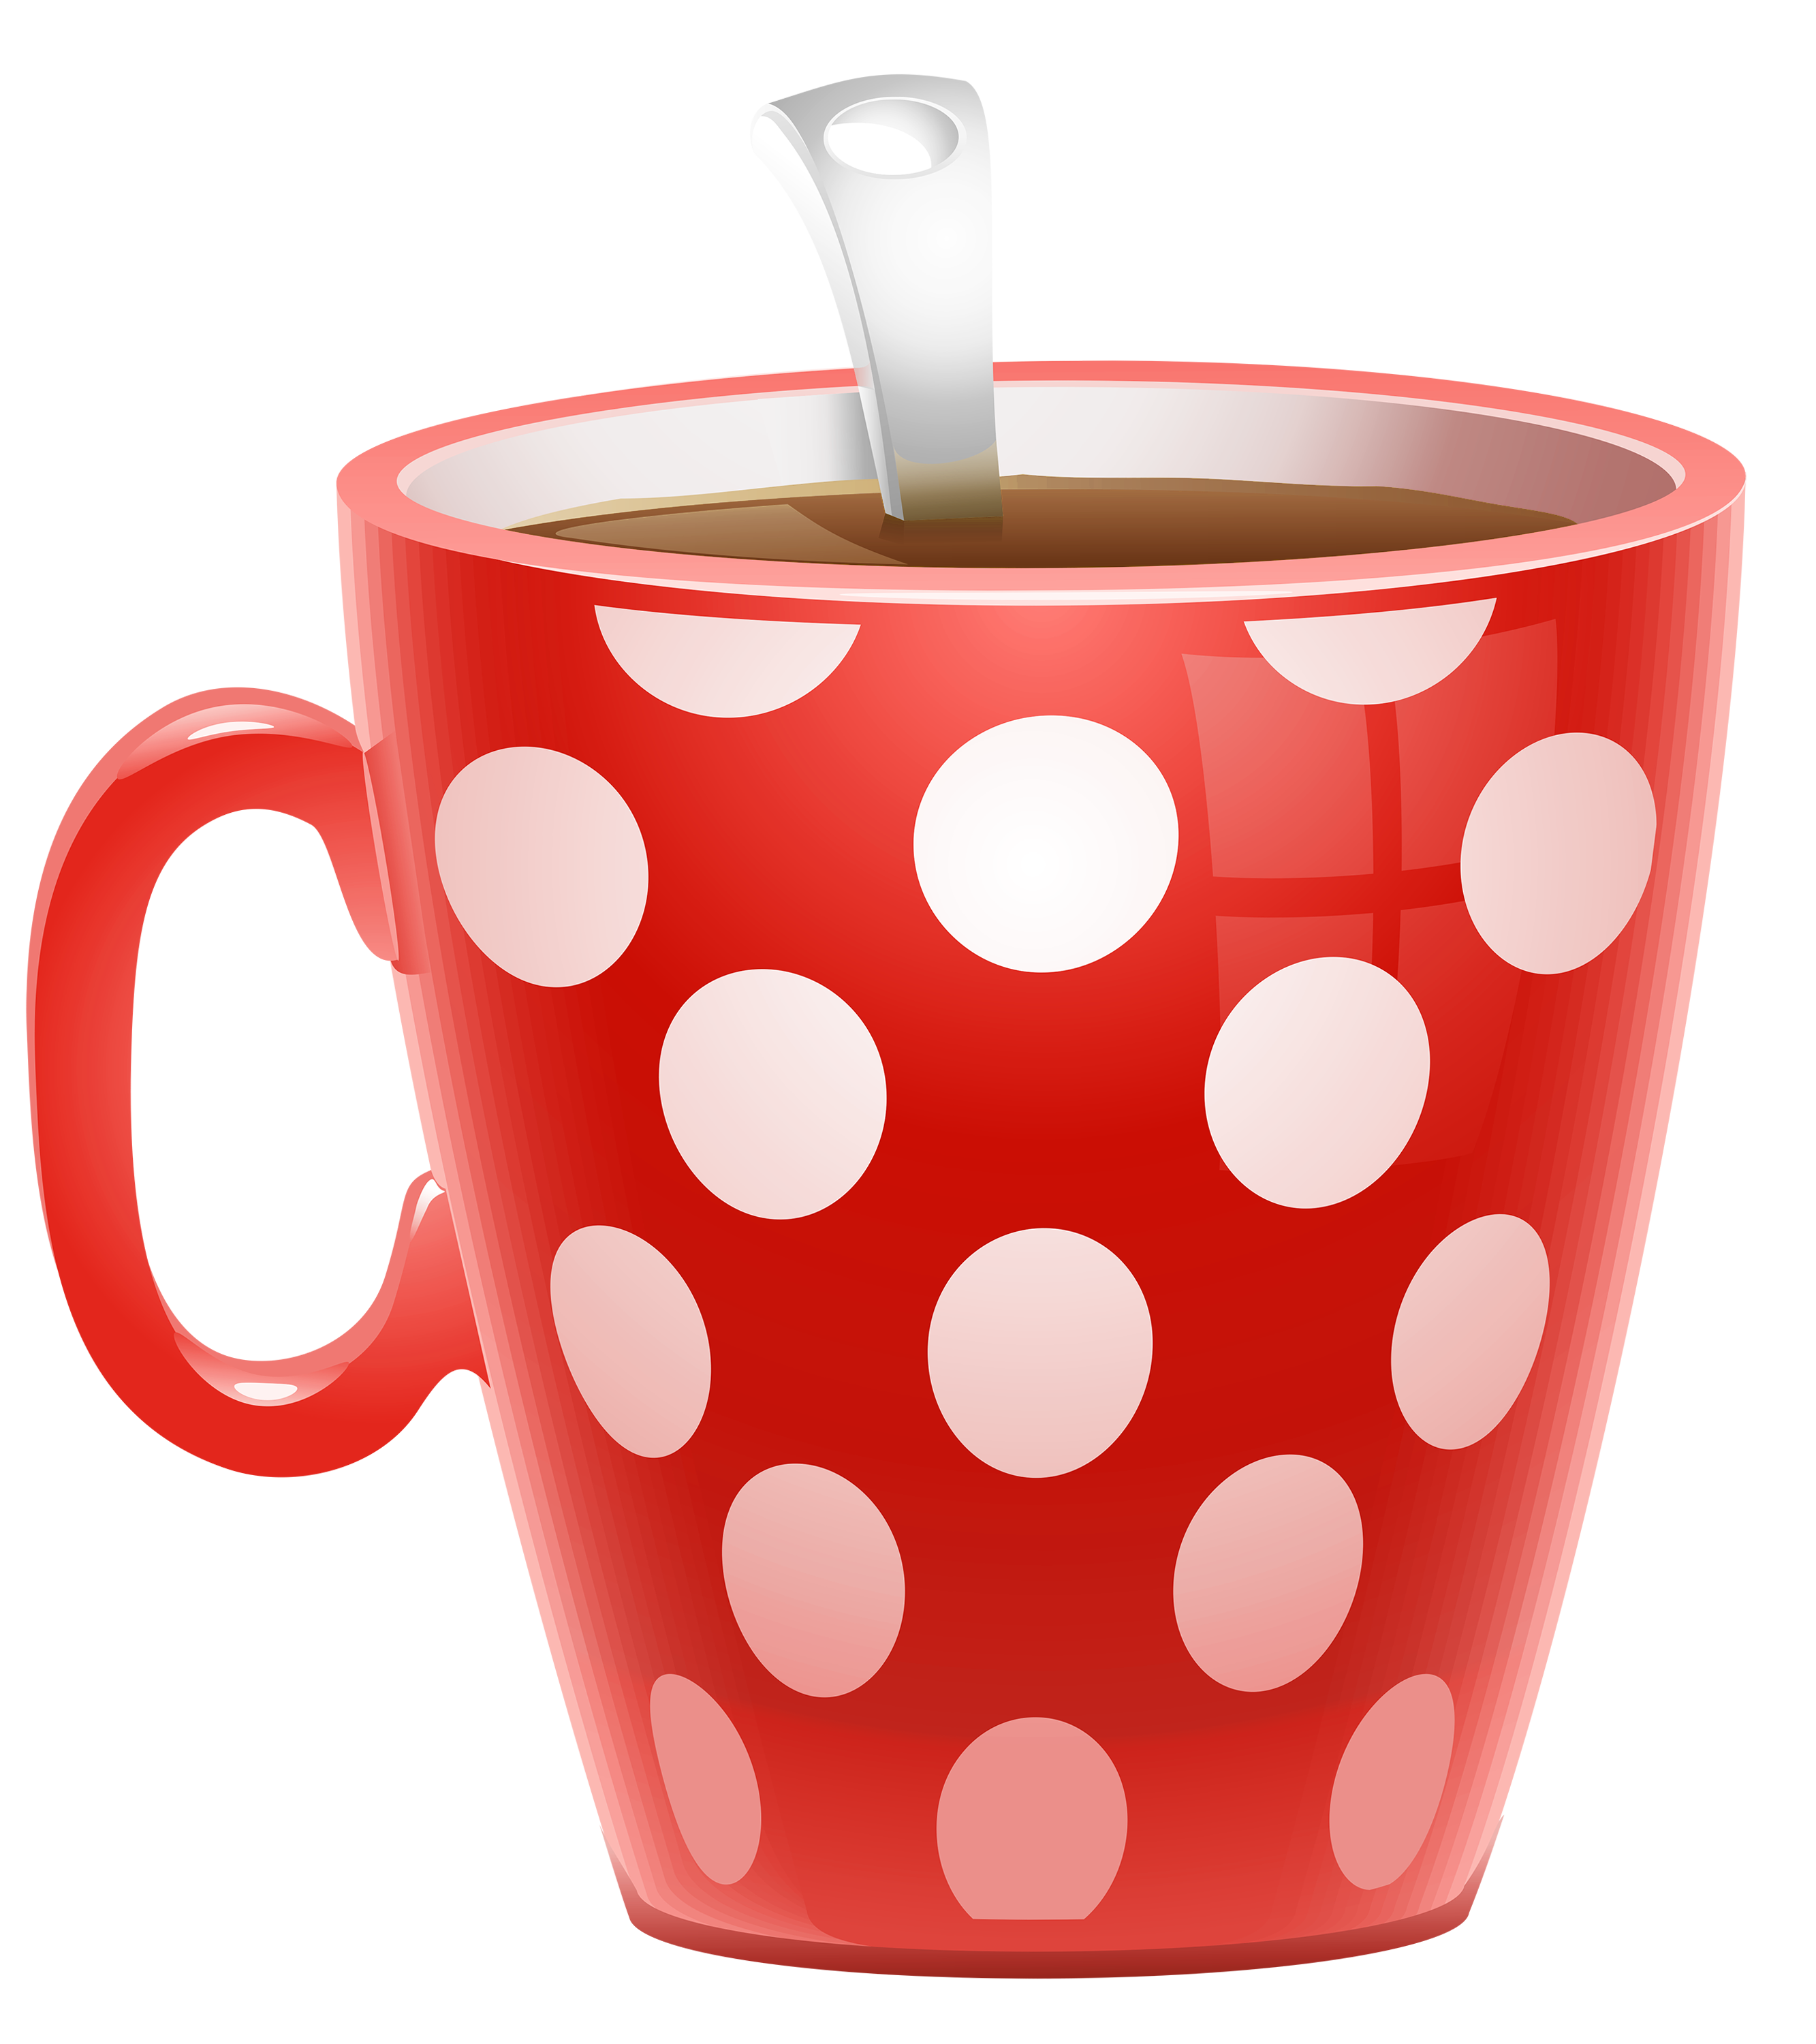 Mug coffee png images. Cup transparent clip art png library